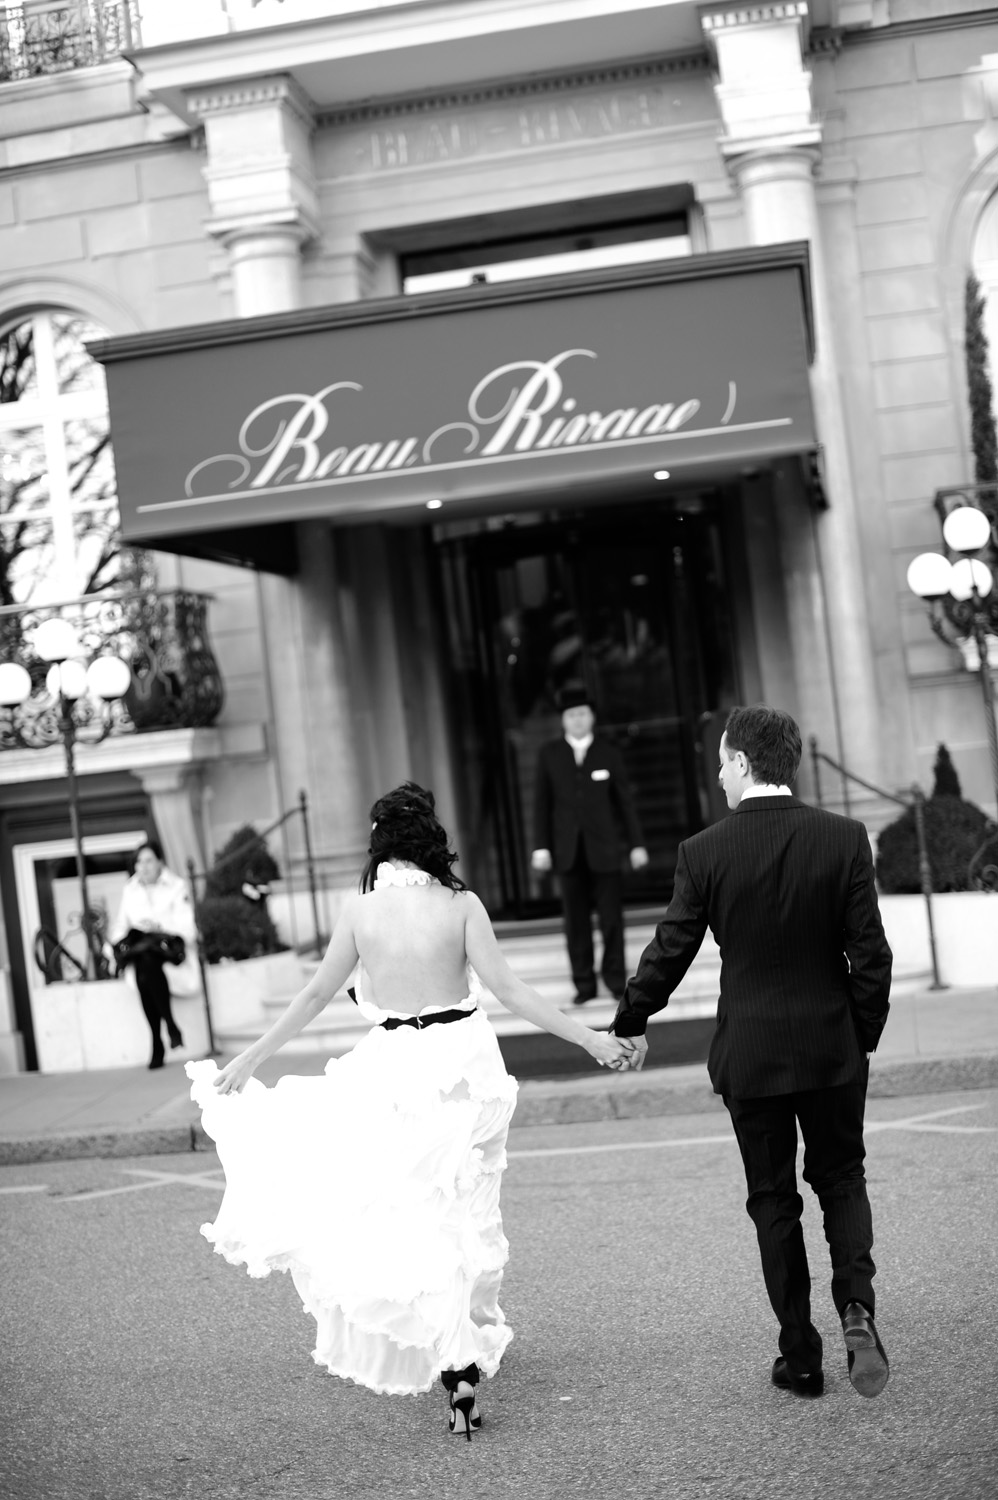 Danielle and Patric's wedding photos taken at the Beau Rivage in Geneva by wedding photographer Switzerland XOANDREA